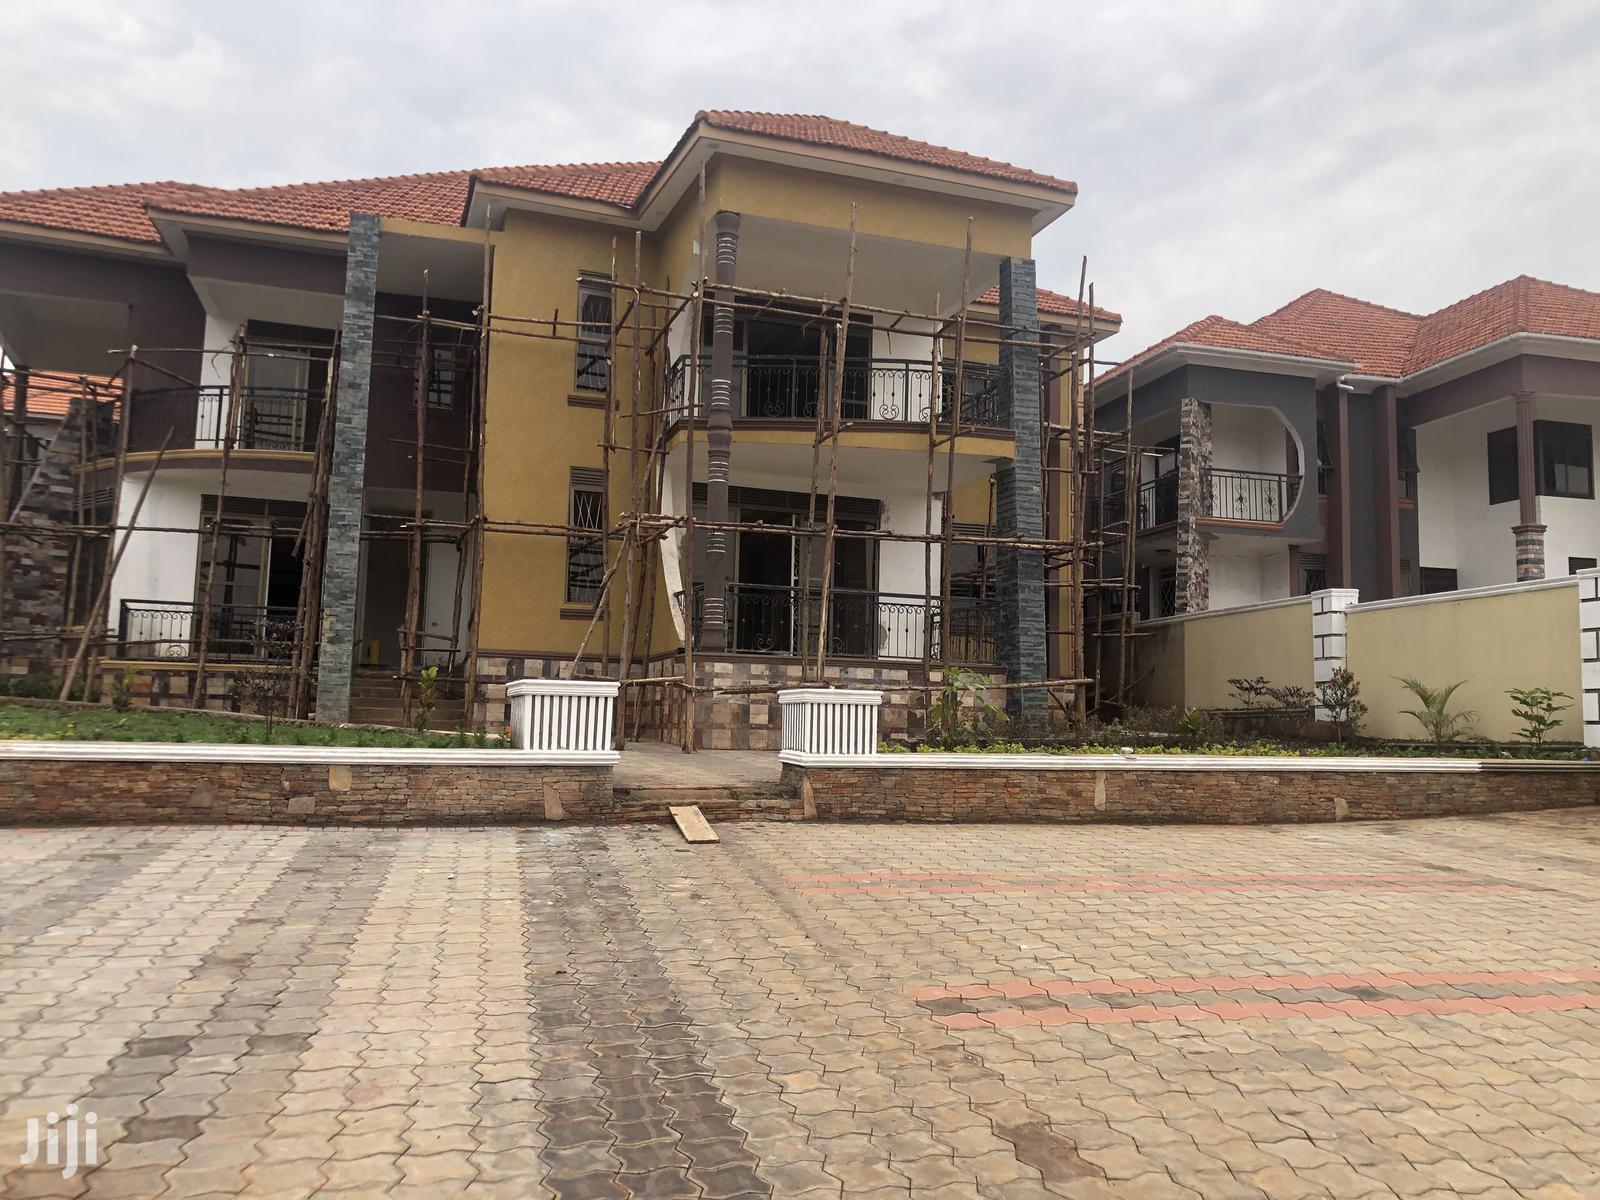 Six Bedrooms House in Kyaliwajjala for Sale | Houses & Apartments For Sale for sale in Wakiso, Central Region, Uganda